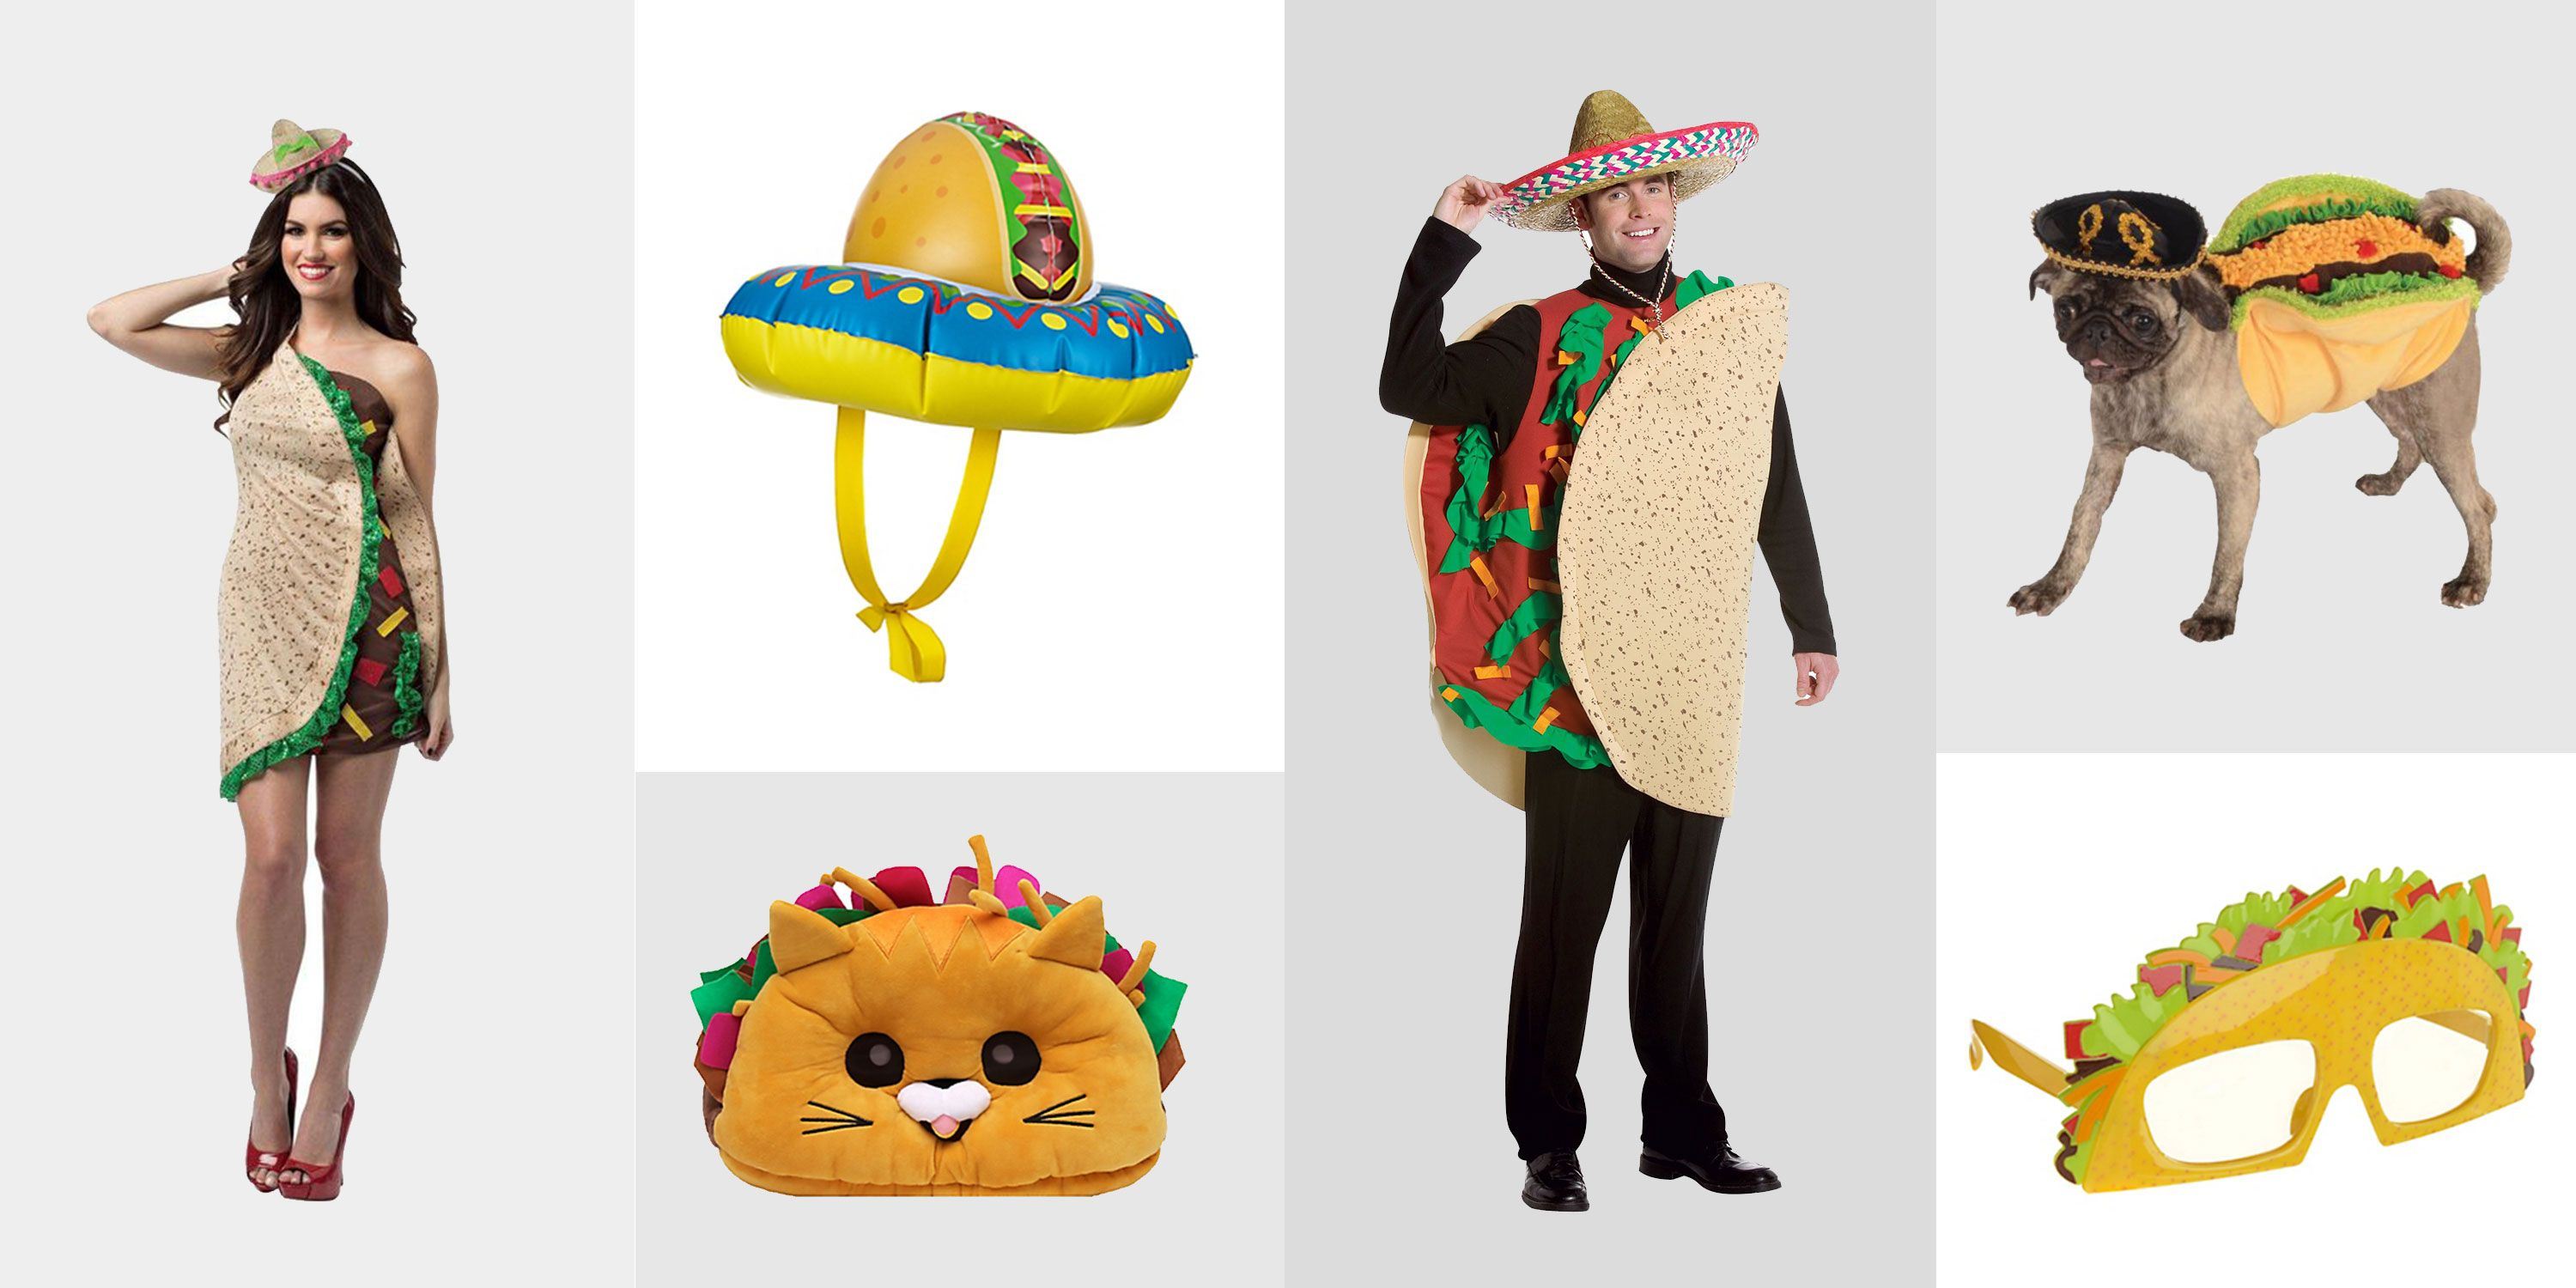 10 Taco Costumes For Halloween 2018 For Women Men Pets